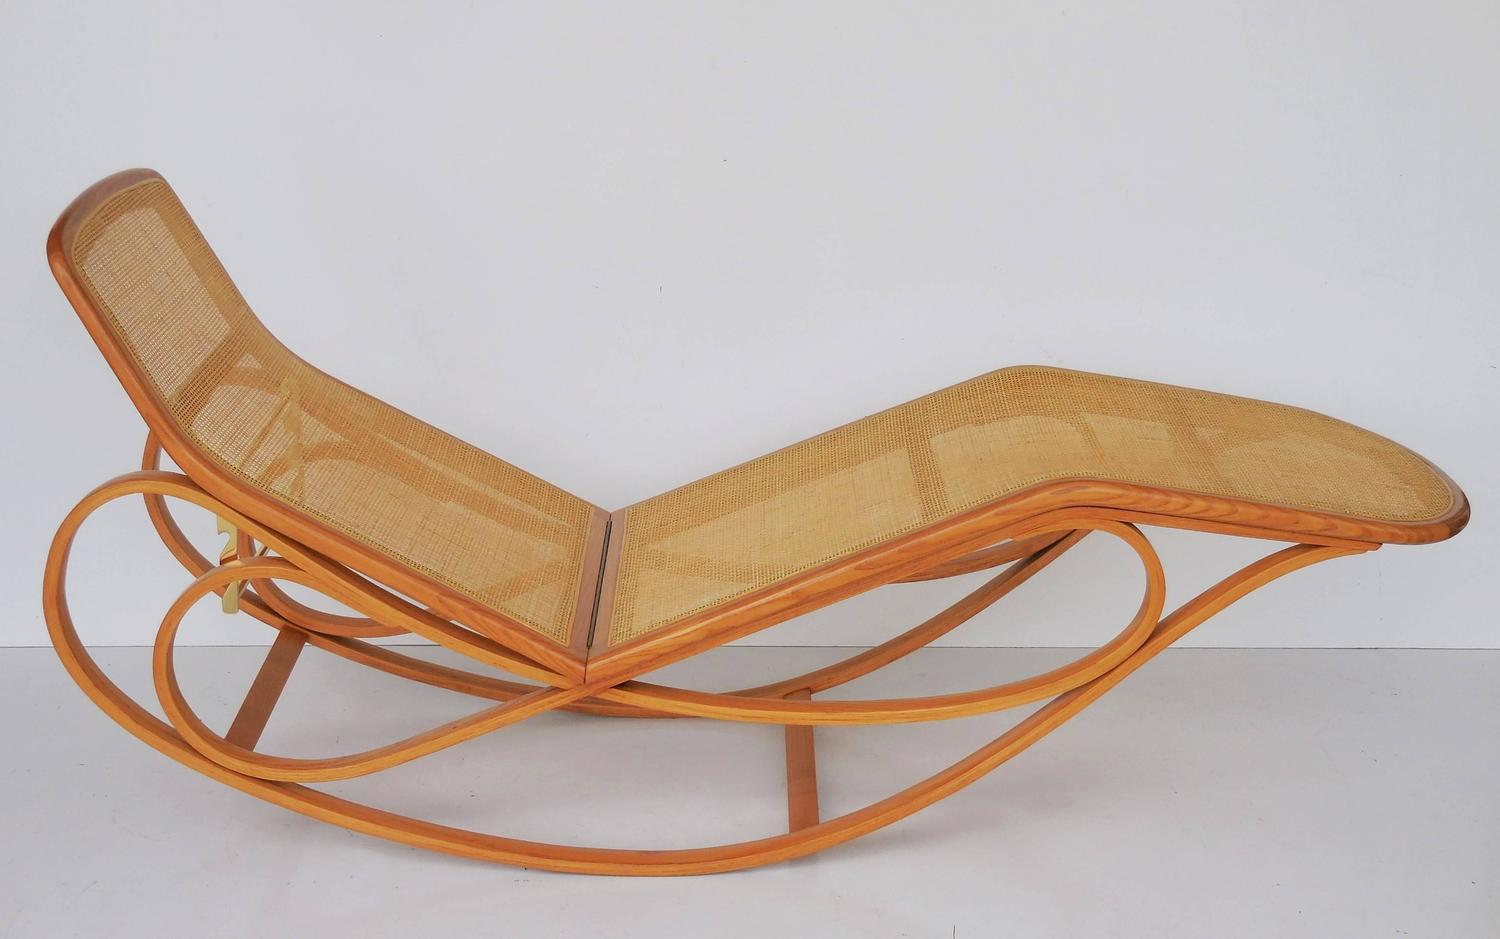 Edward wormley for dunbar rocking chaise for sale at 1stdibs for Chaise x rocker